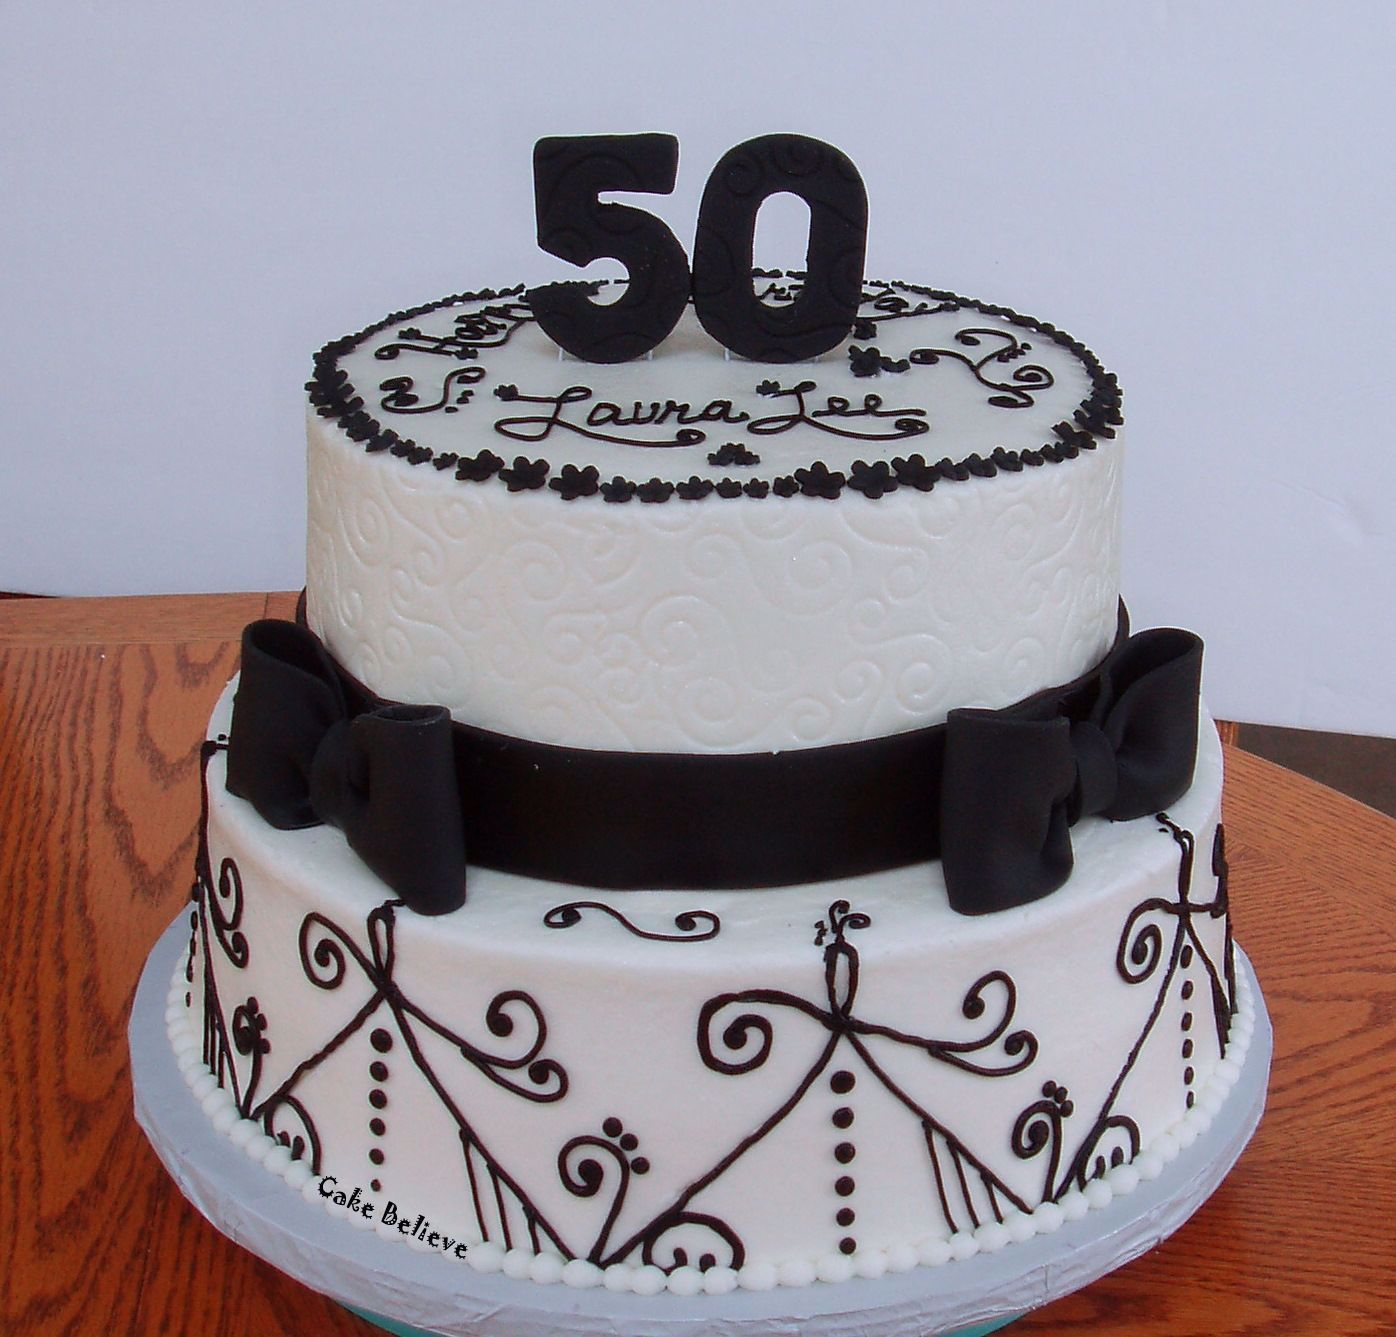 59th Birthday Cake In 2020 50th Birthday Cake Images 50th